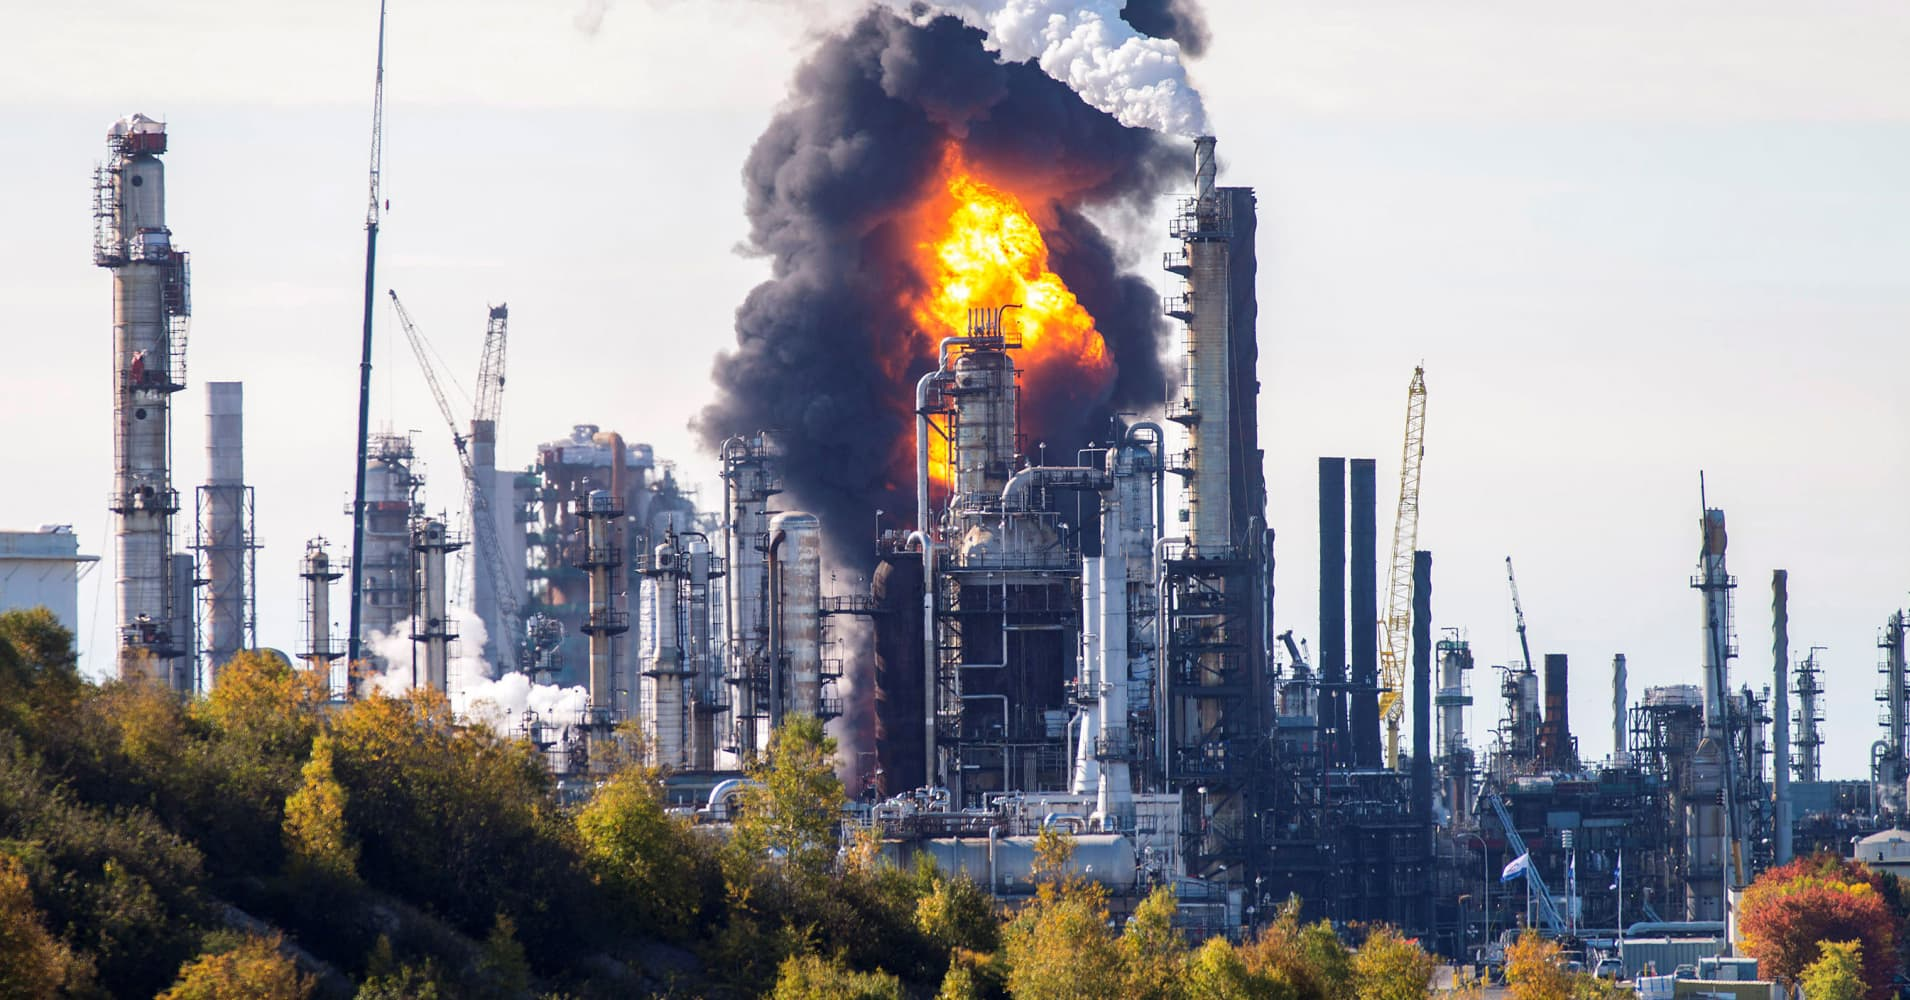 'Major incident' confirmed at Canada's largest refinery after reports of explosion